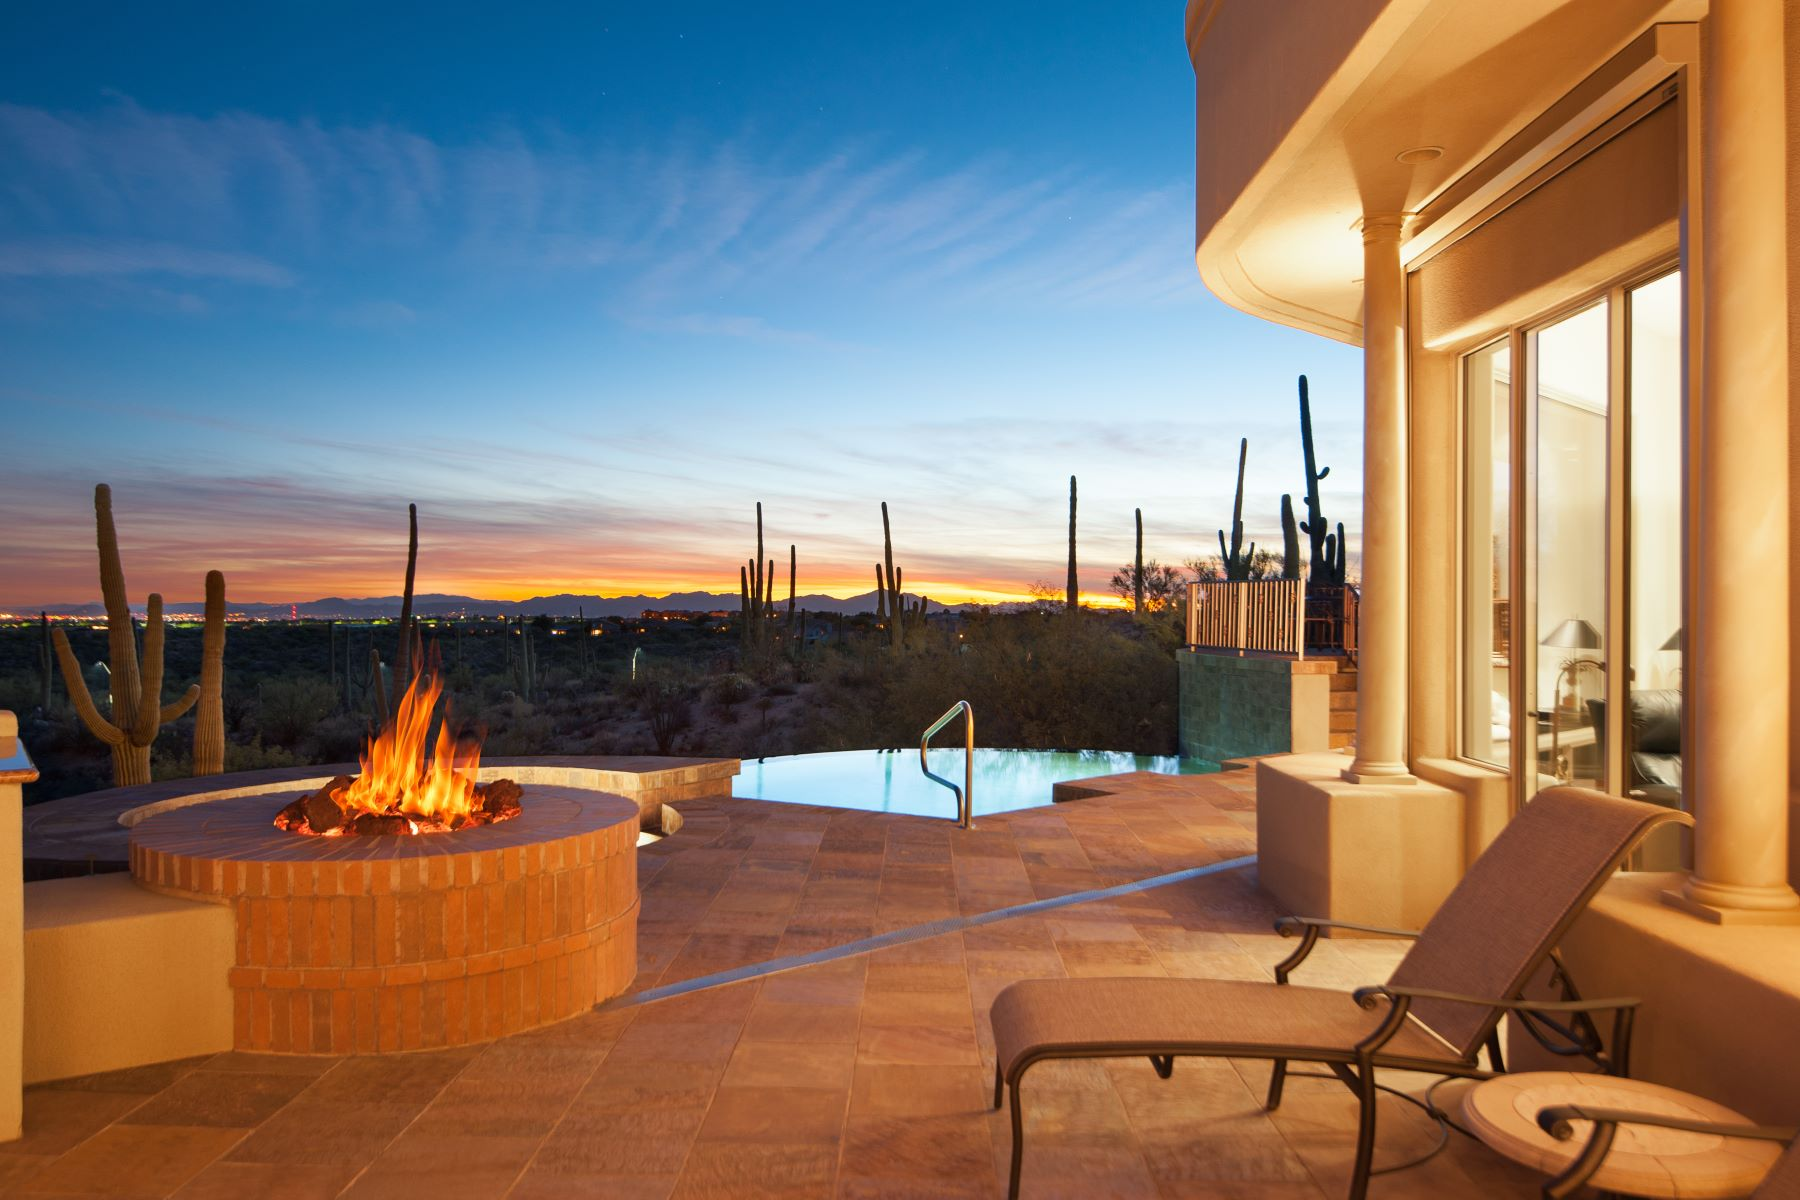 single family homes for Active at Combination of Contemporary & Mediterranean Architecture 238 E Allthorn Place Oro Valley, Arizona 85755 United States